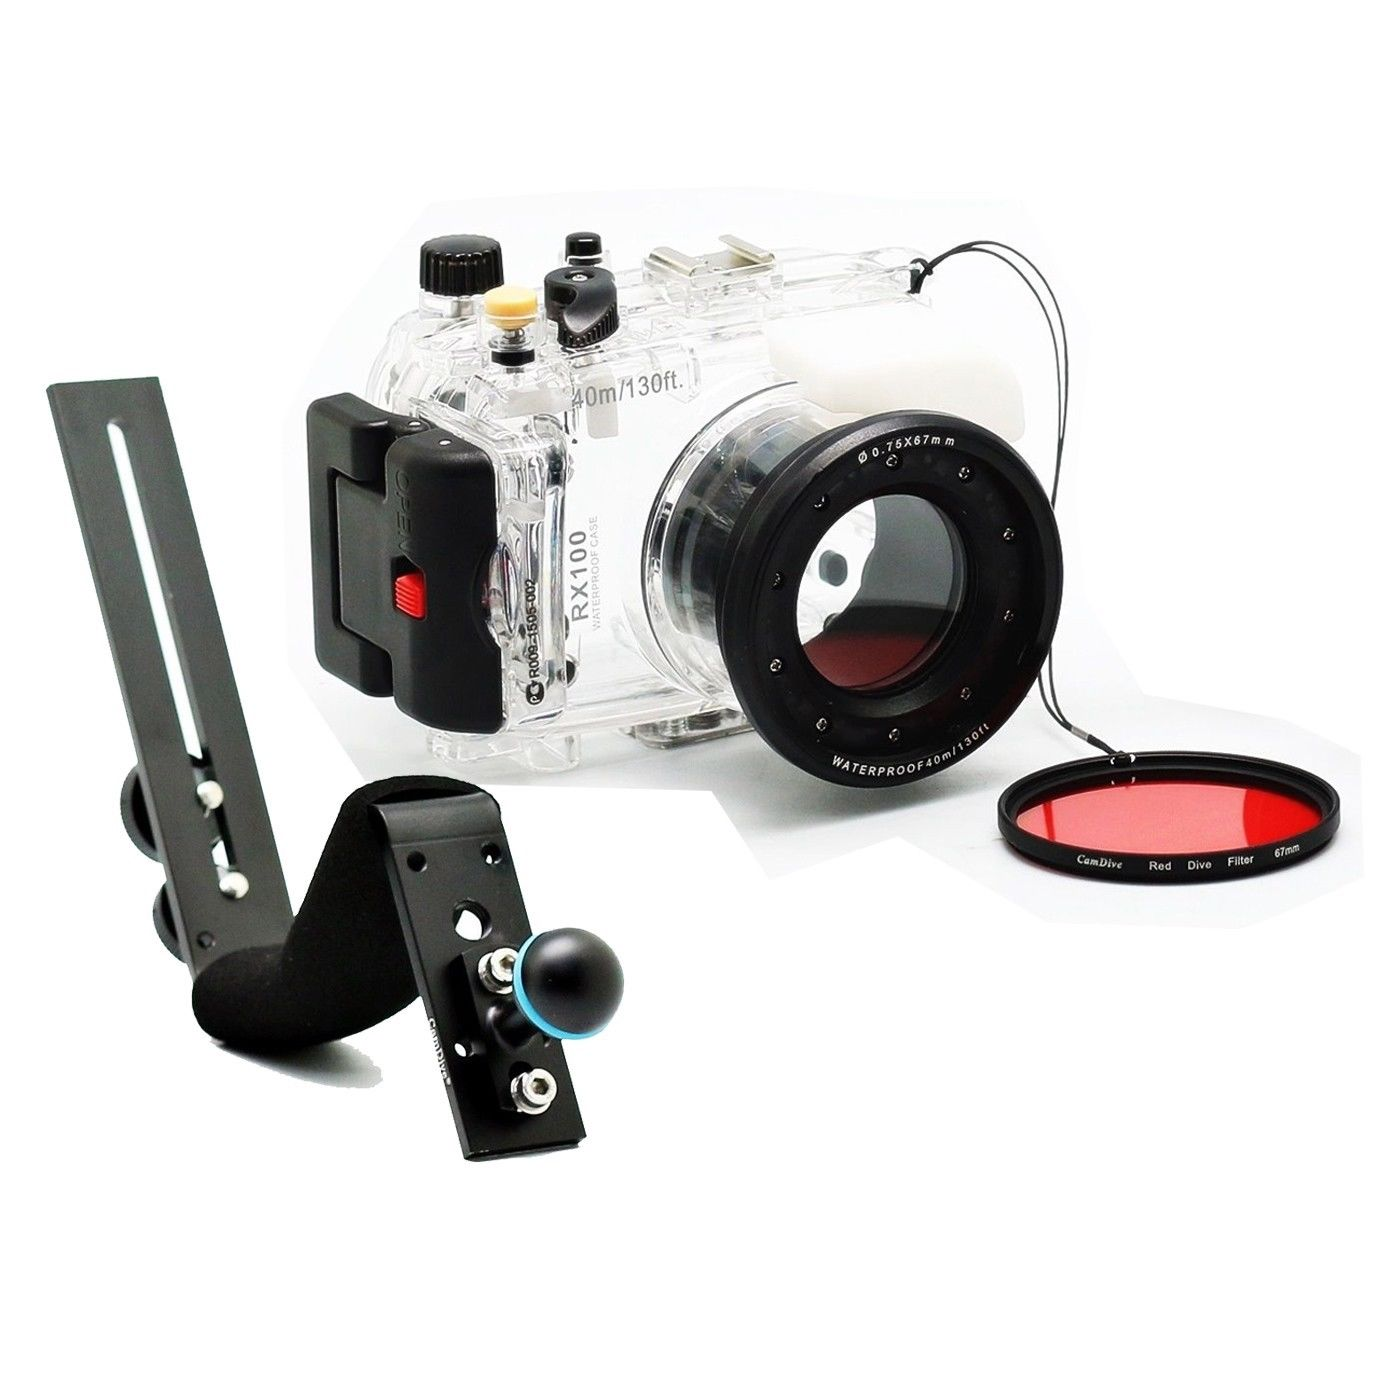 For Sony RX100 DSC-RX100 40m/130ft Waterproof Underwater Housing Case Cover + Diving handle + Filter